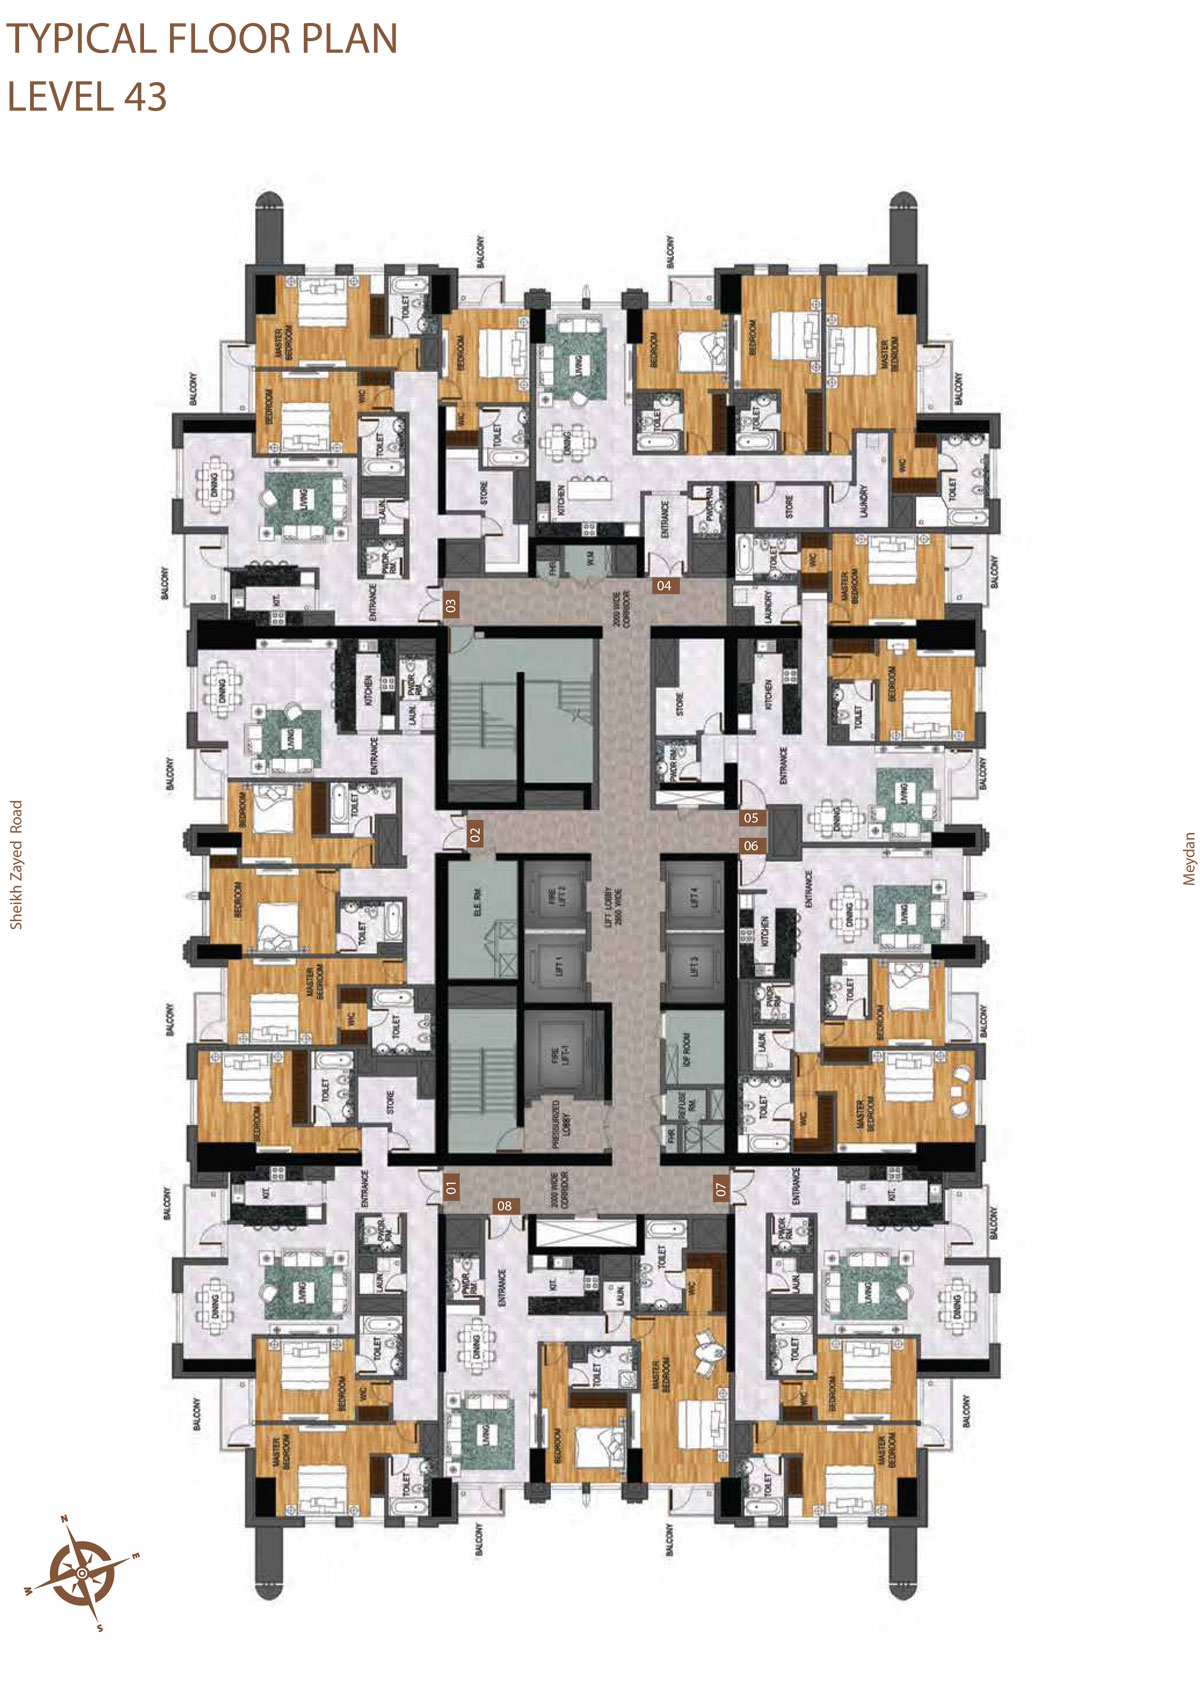 Level 43     Typical Floor Layout Plan